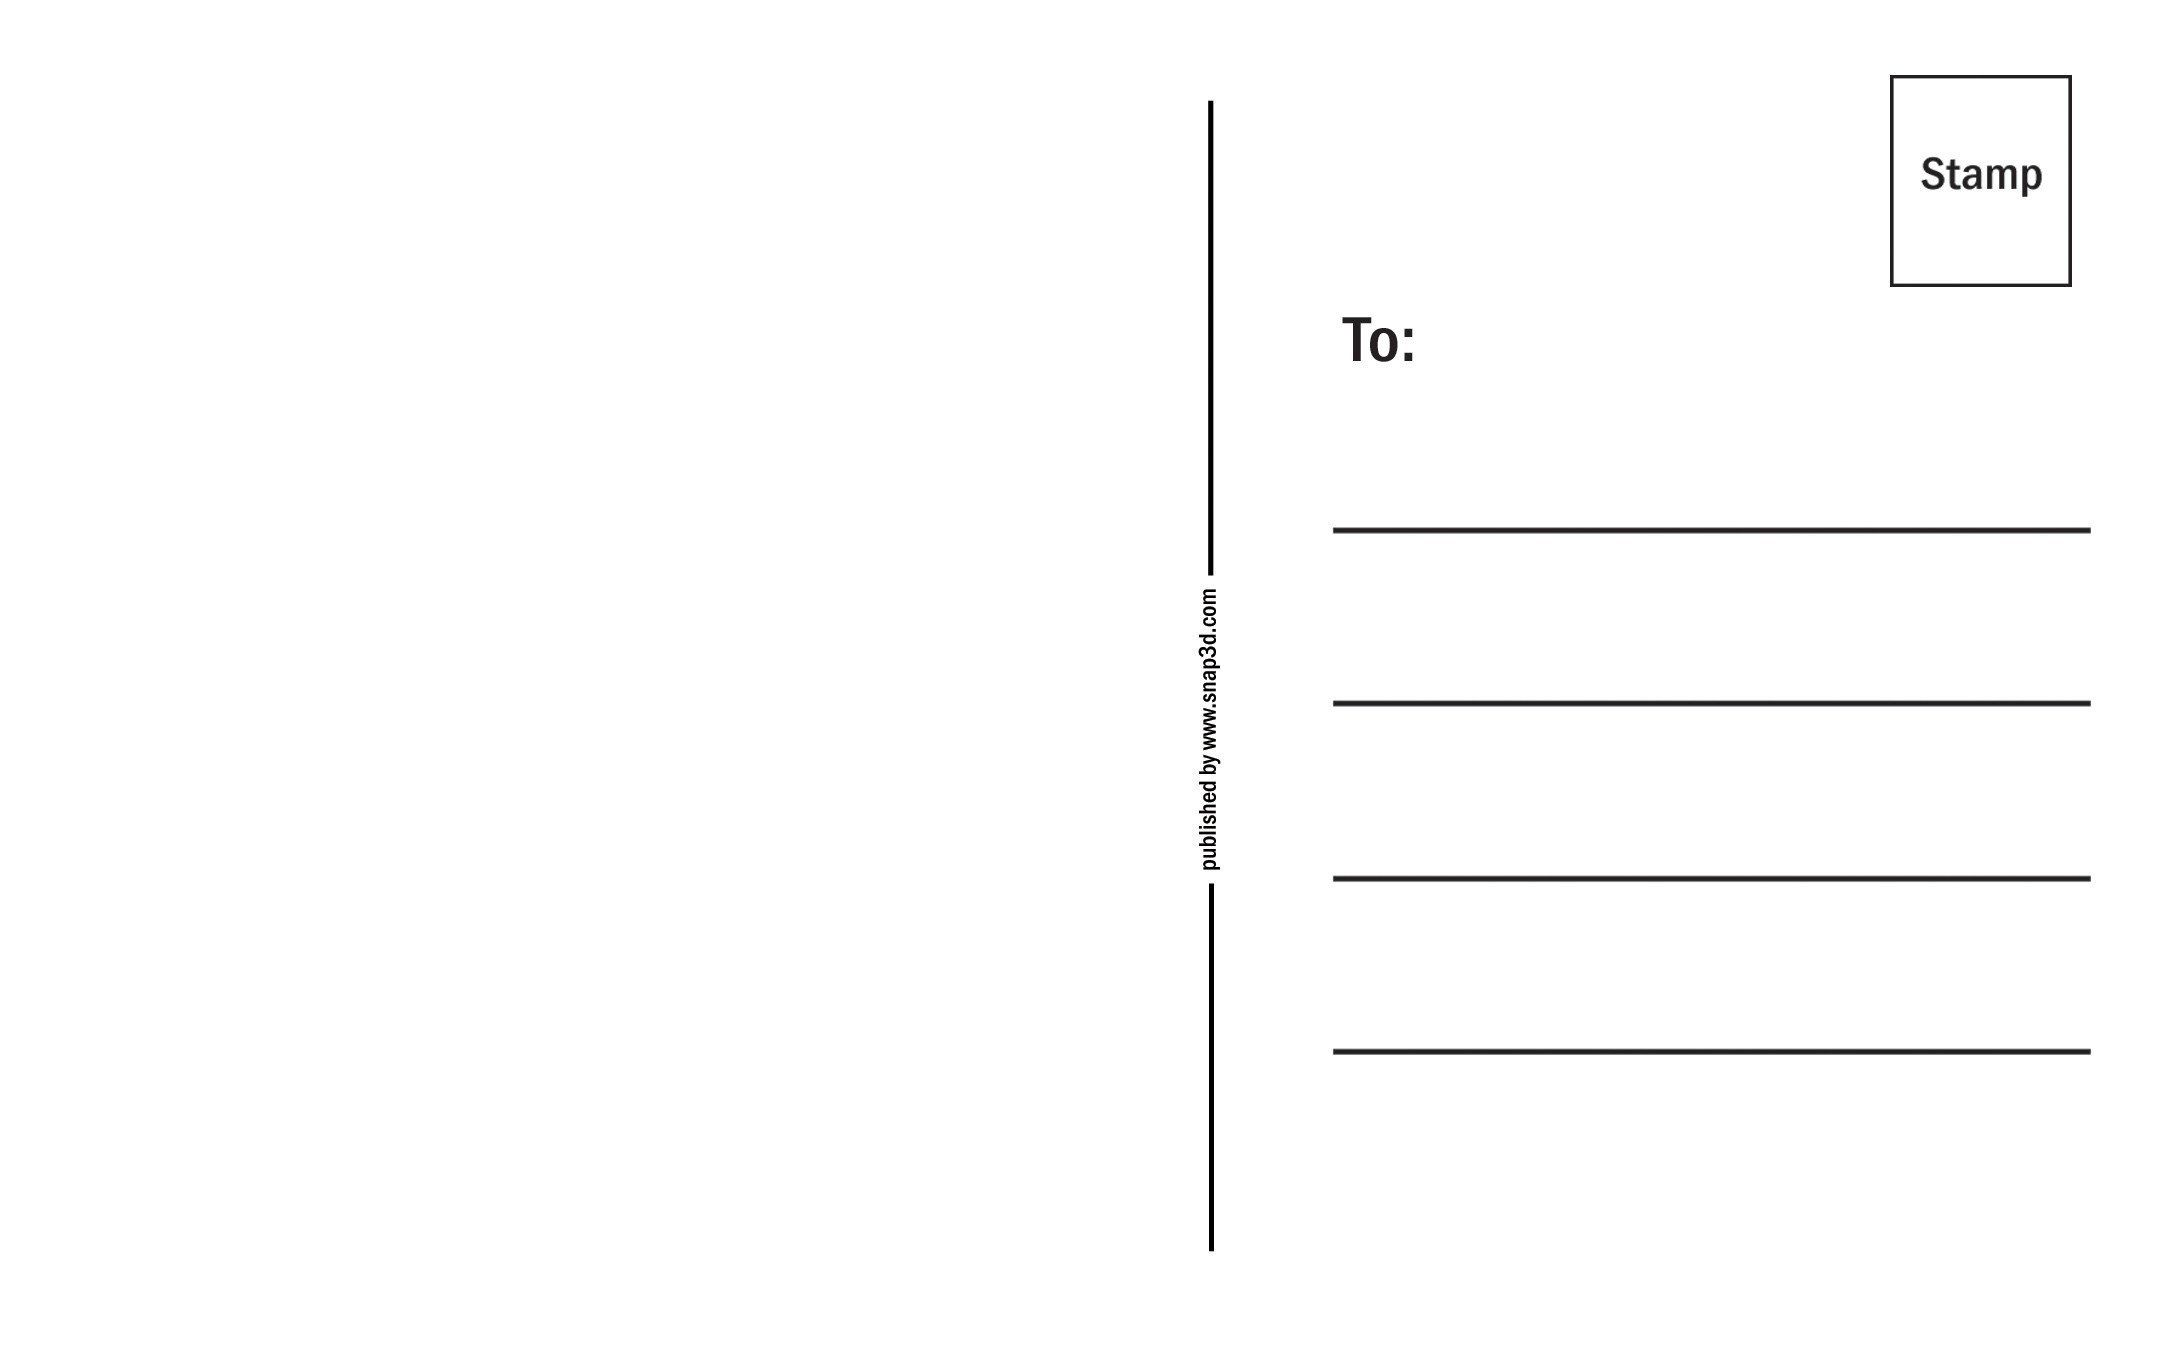 Back Of Postcard Template Back Of A Postcard Template Postcard Template Free Postcard Template Free Business Card Templates